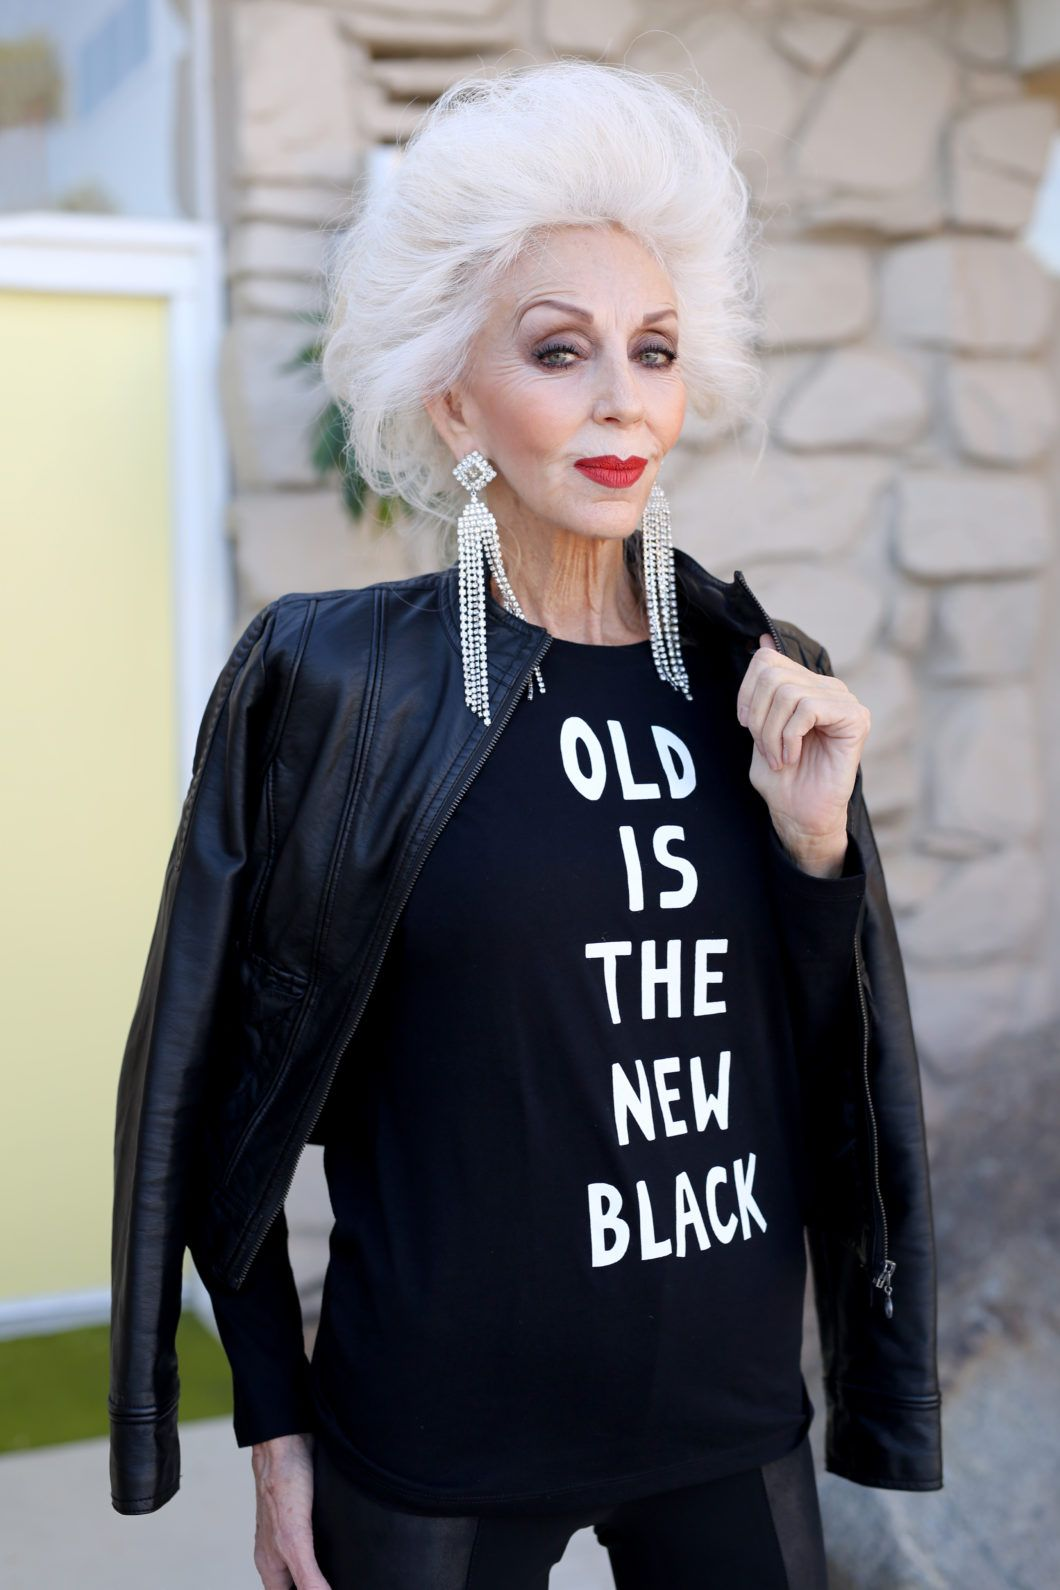 Old is the new black ;-)